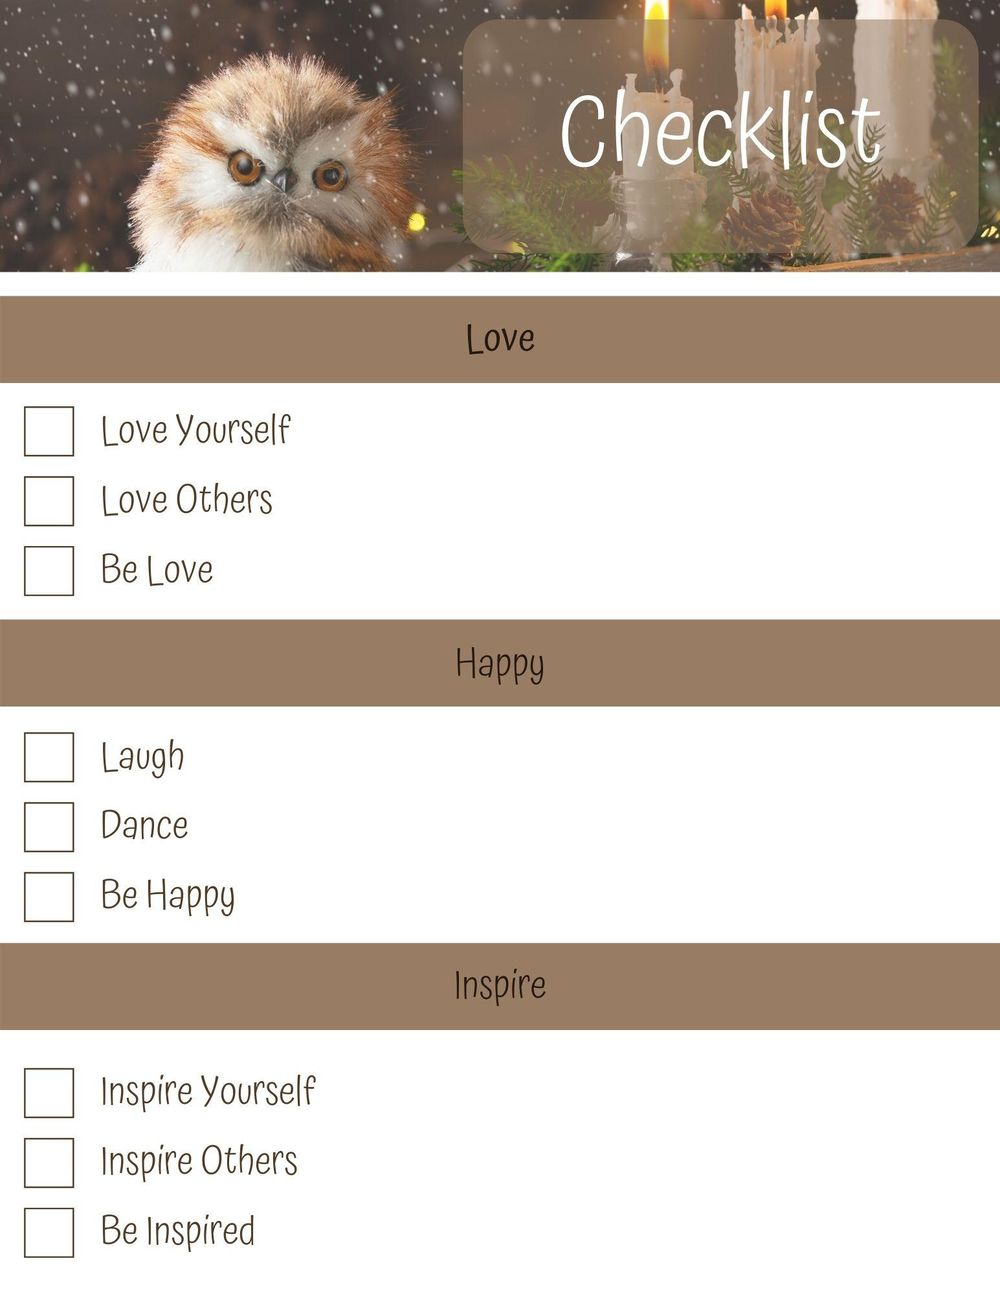 1st Checklist Designs Created - image 3 - student project